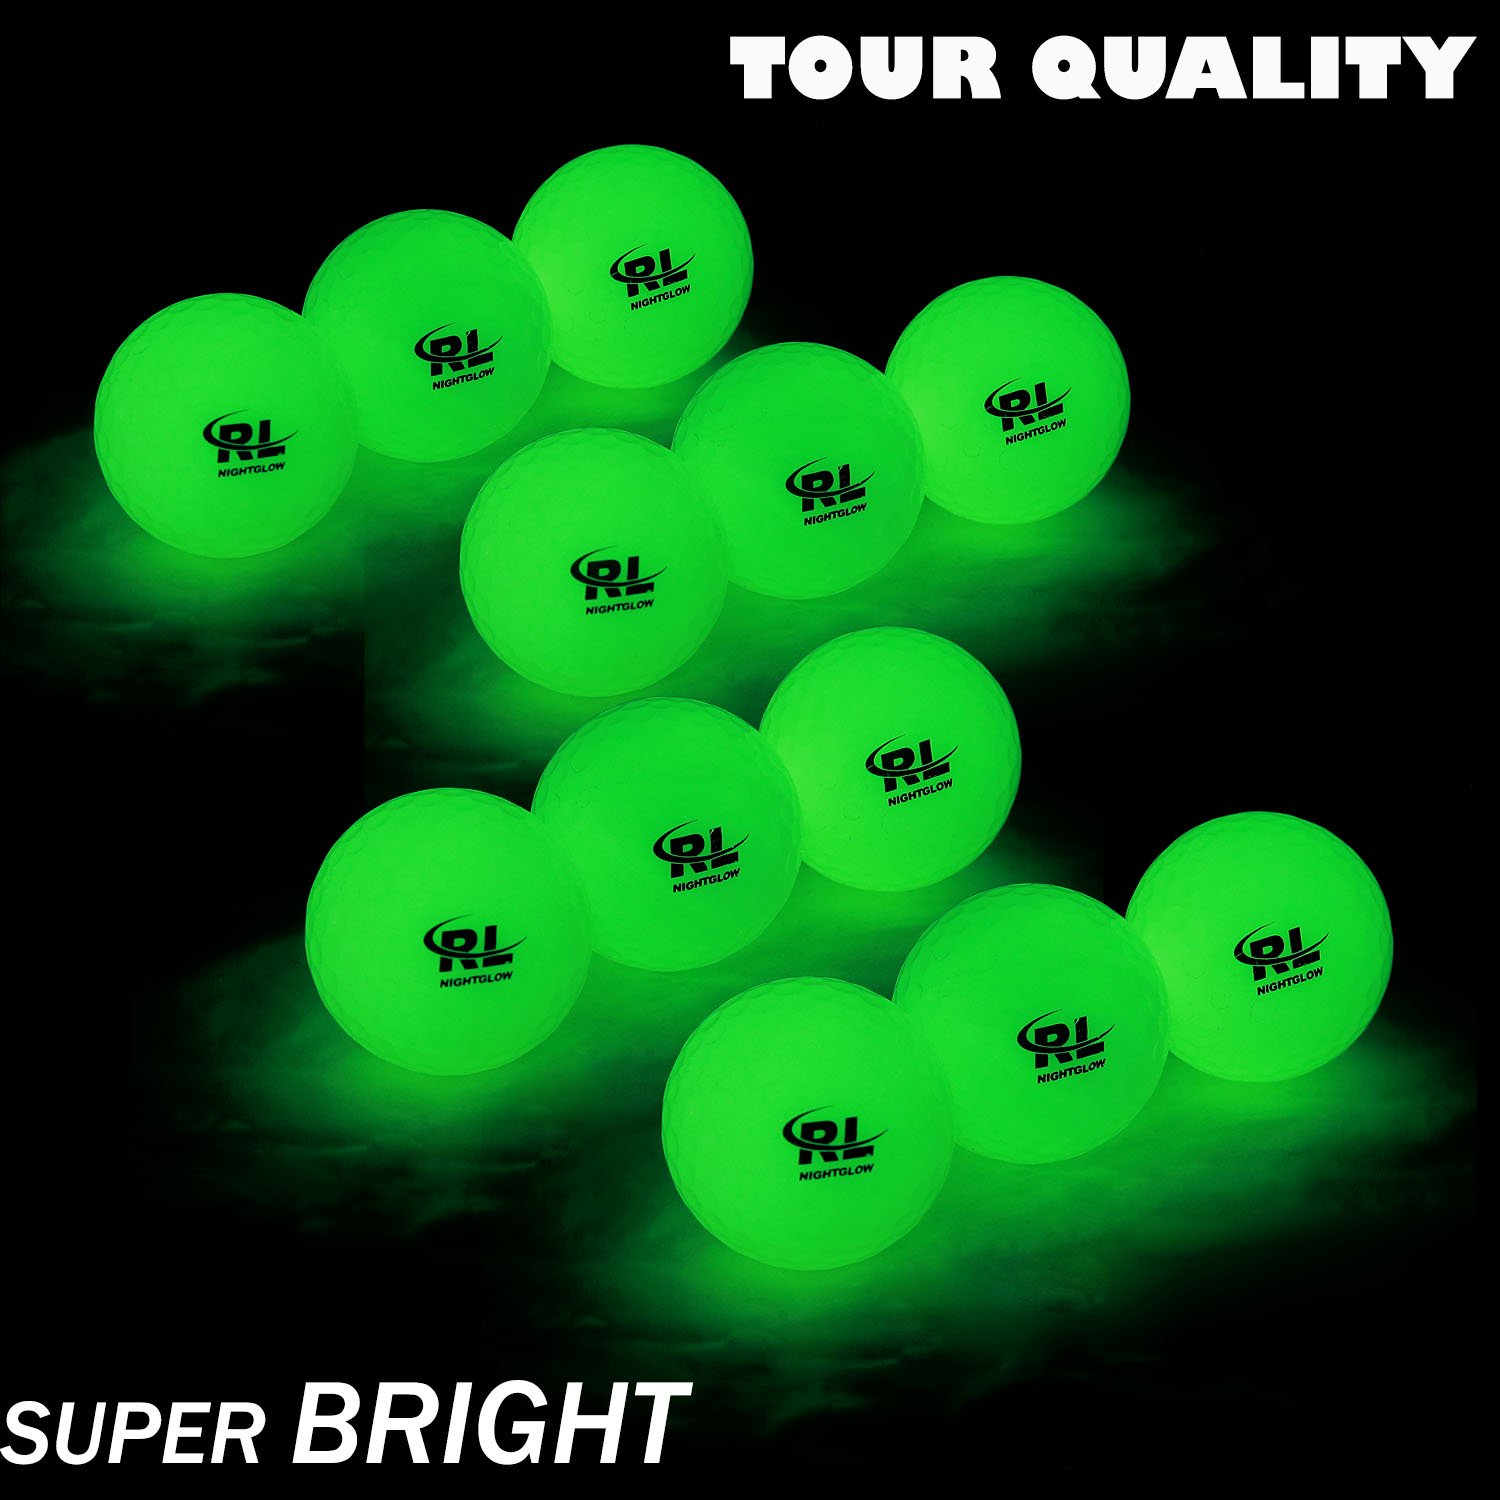 R&L Glow Golf Balls for Night Sports - Tournament Fluorescent Glowing in The Dark Golf Ball - Long Lasting Bright Luminous Balls Rechargeable with UV Flashlight - Included (6 Pack) by R&L